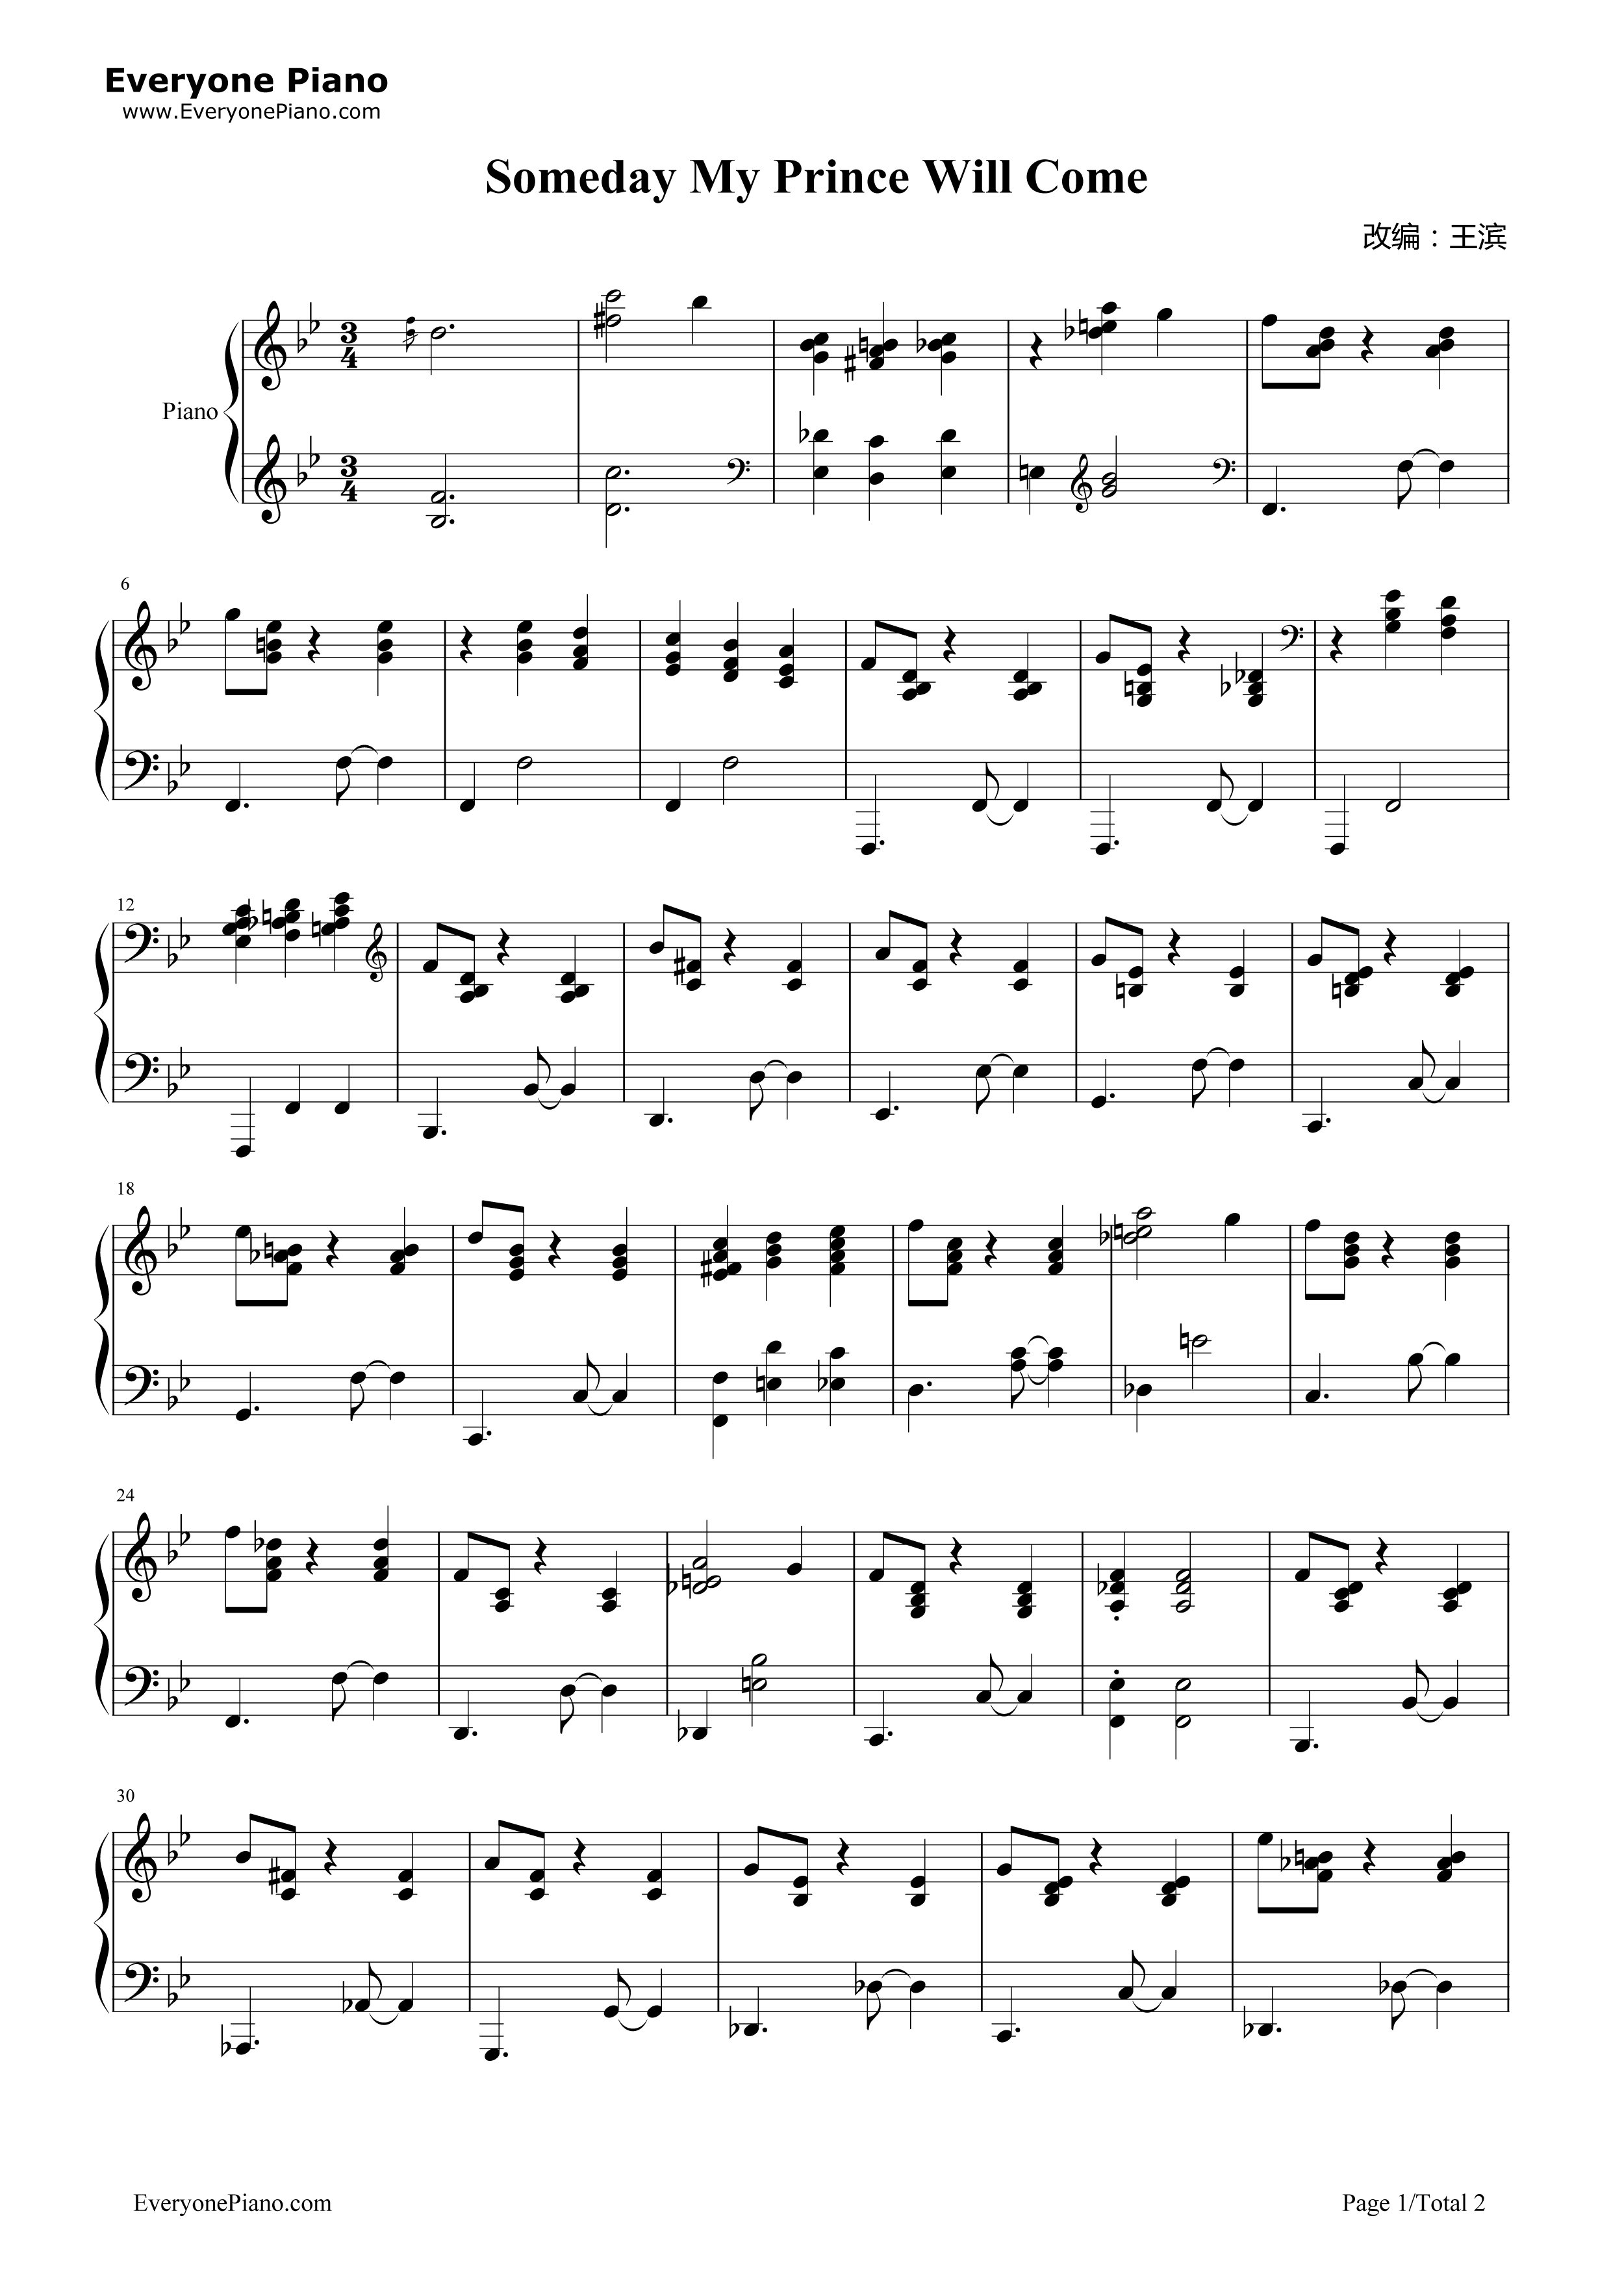 Someday my prince will come stave preview 1 free piano sheet listen now print sheet someday my prince will come stave preview 1 hexwebz Choice Image